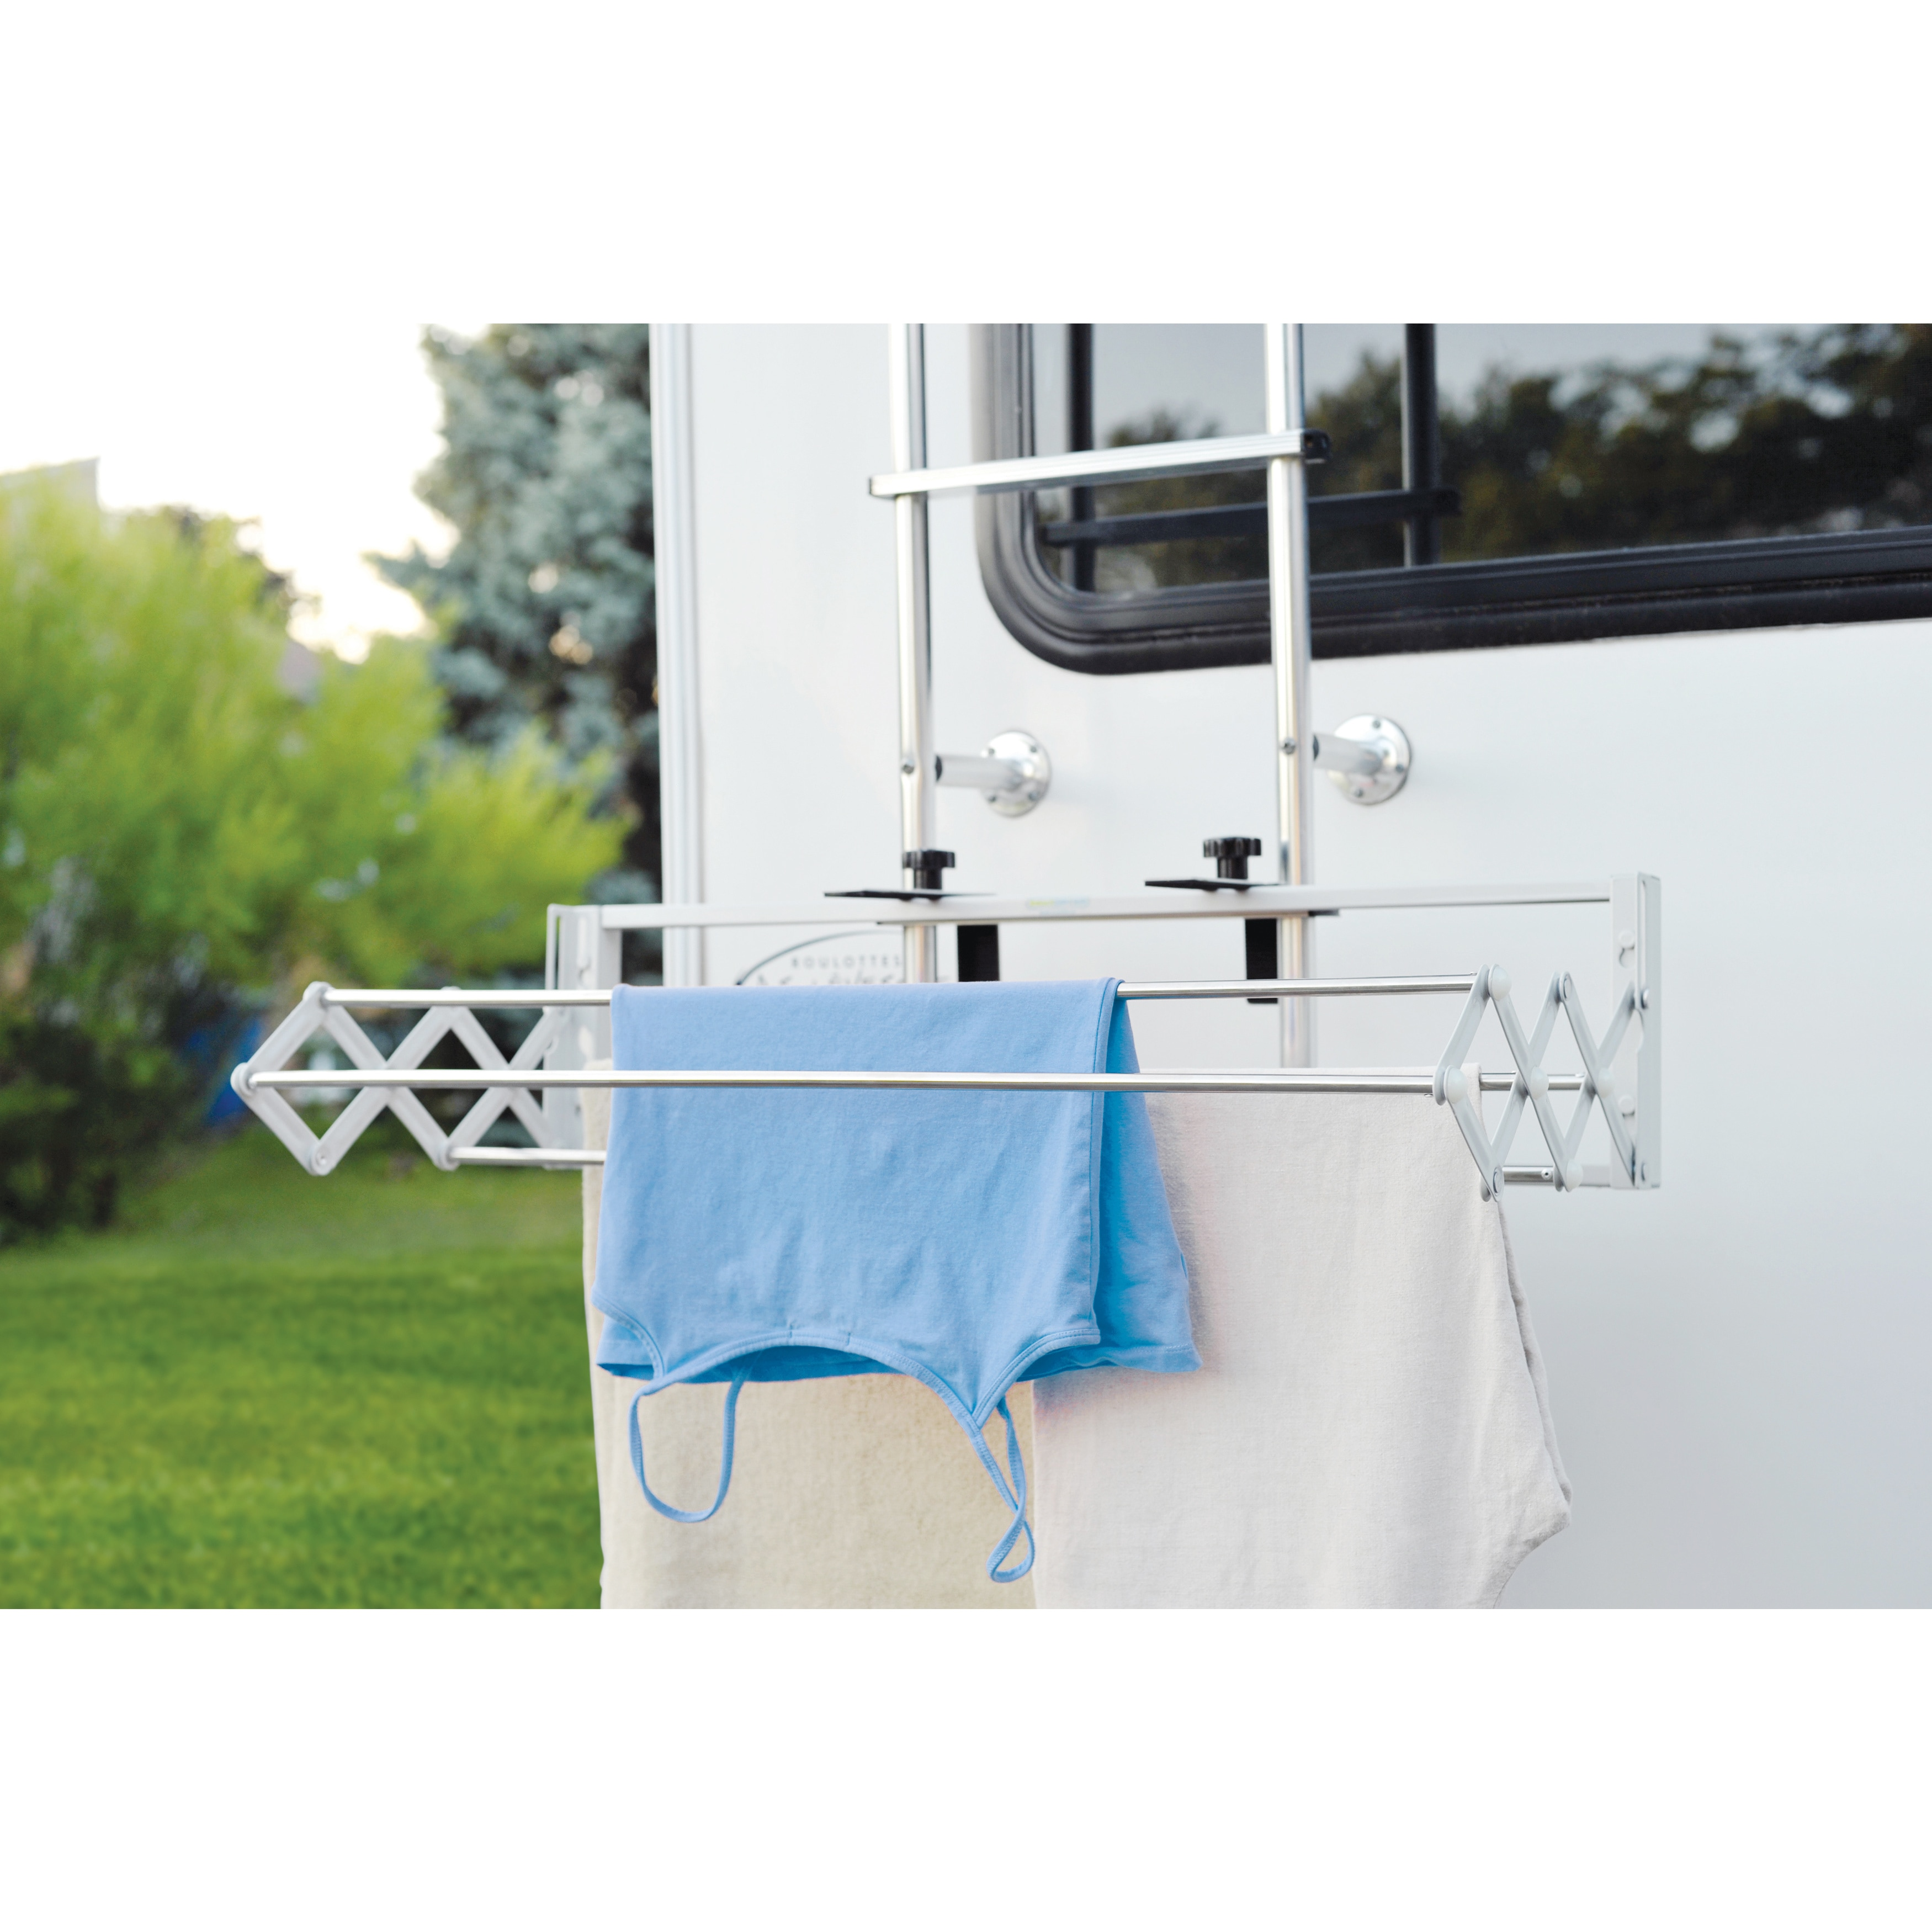 Compact Smart Dryer : Expandable Indoor/Outdoor Drying Ra...